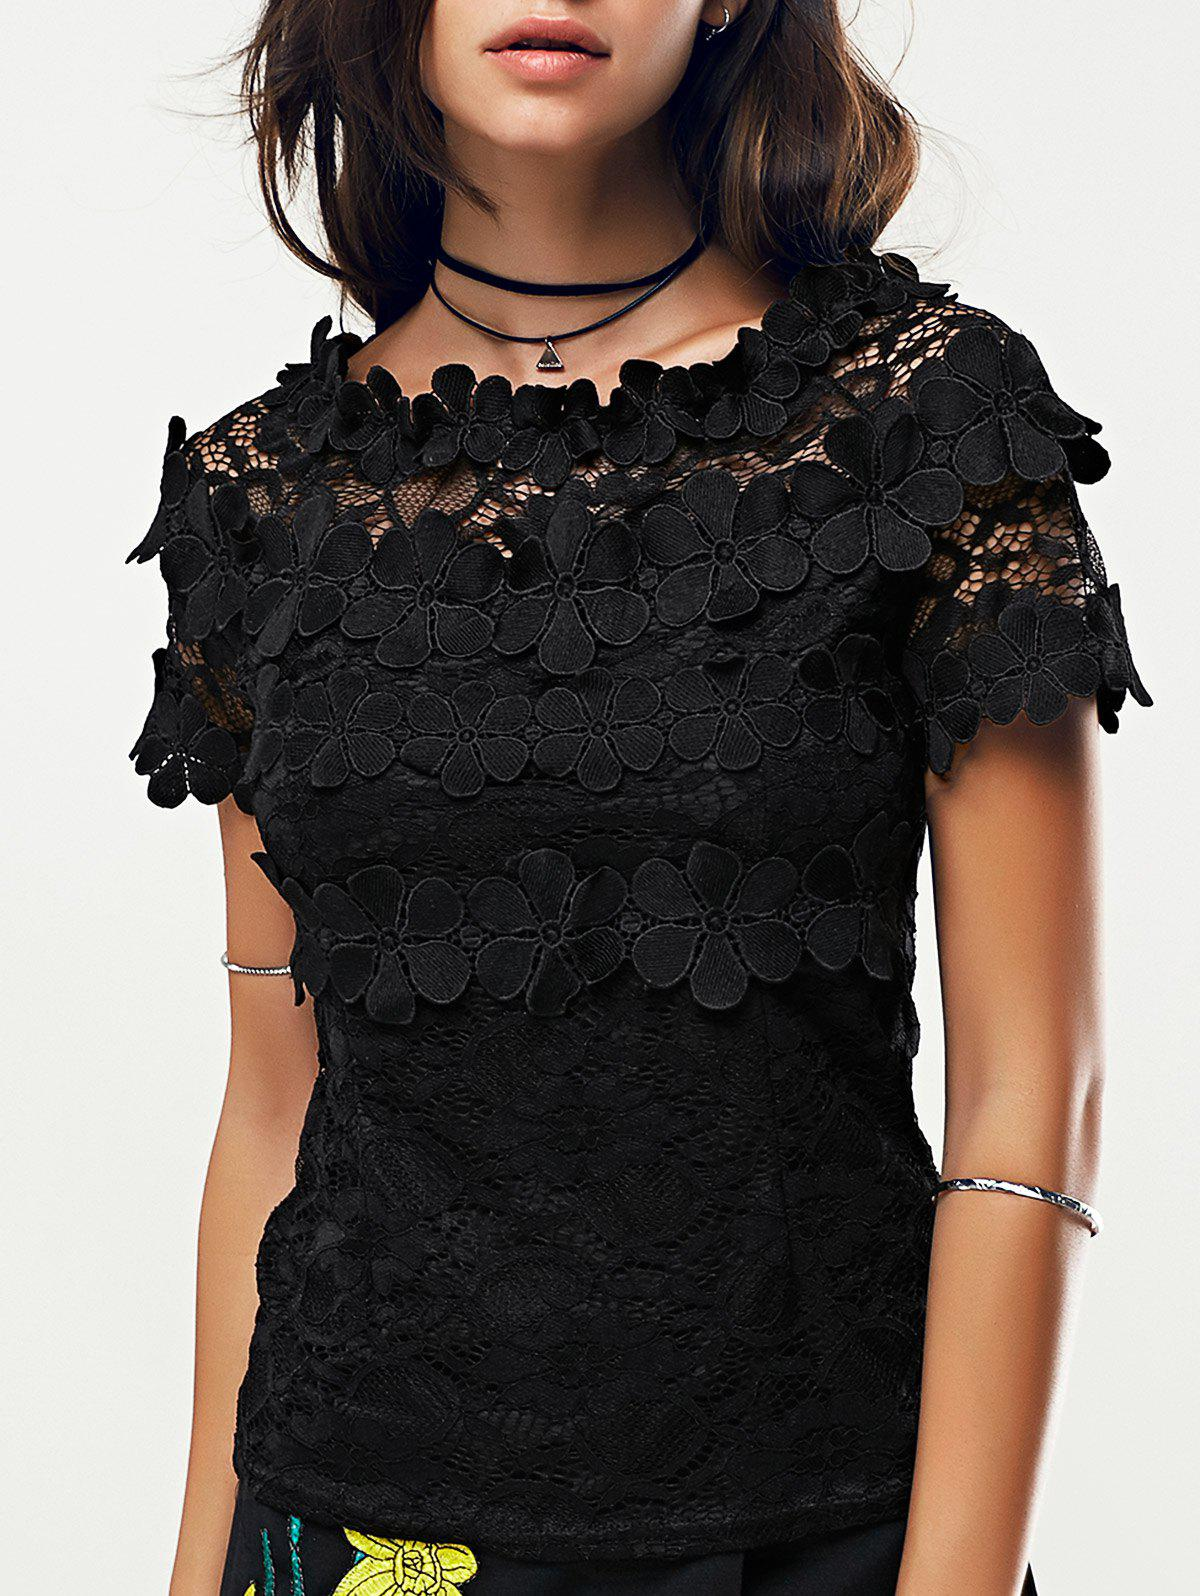 Black Short Sleeve Lace Blouse - BLACK ONE SIZE(FIT SIZE XS TO M)